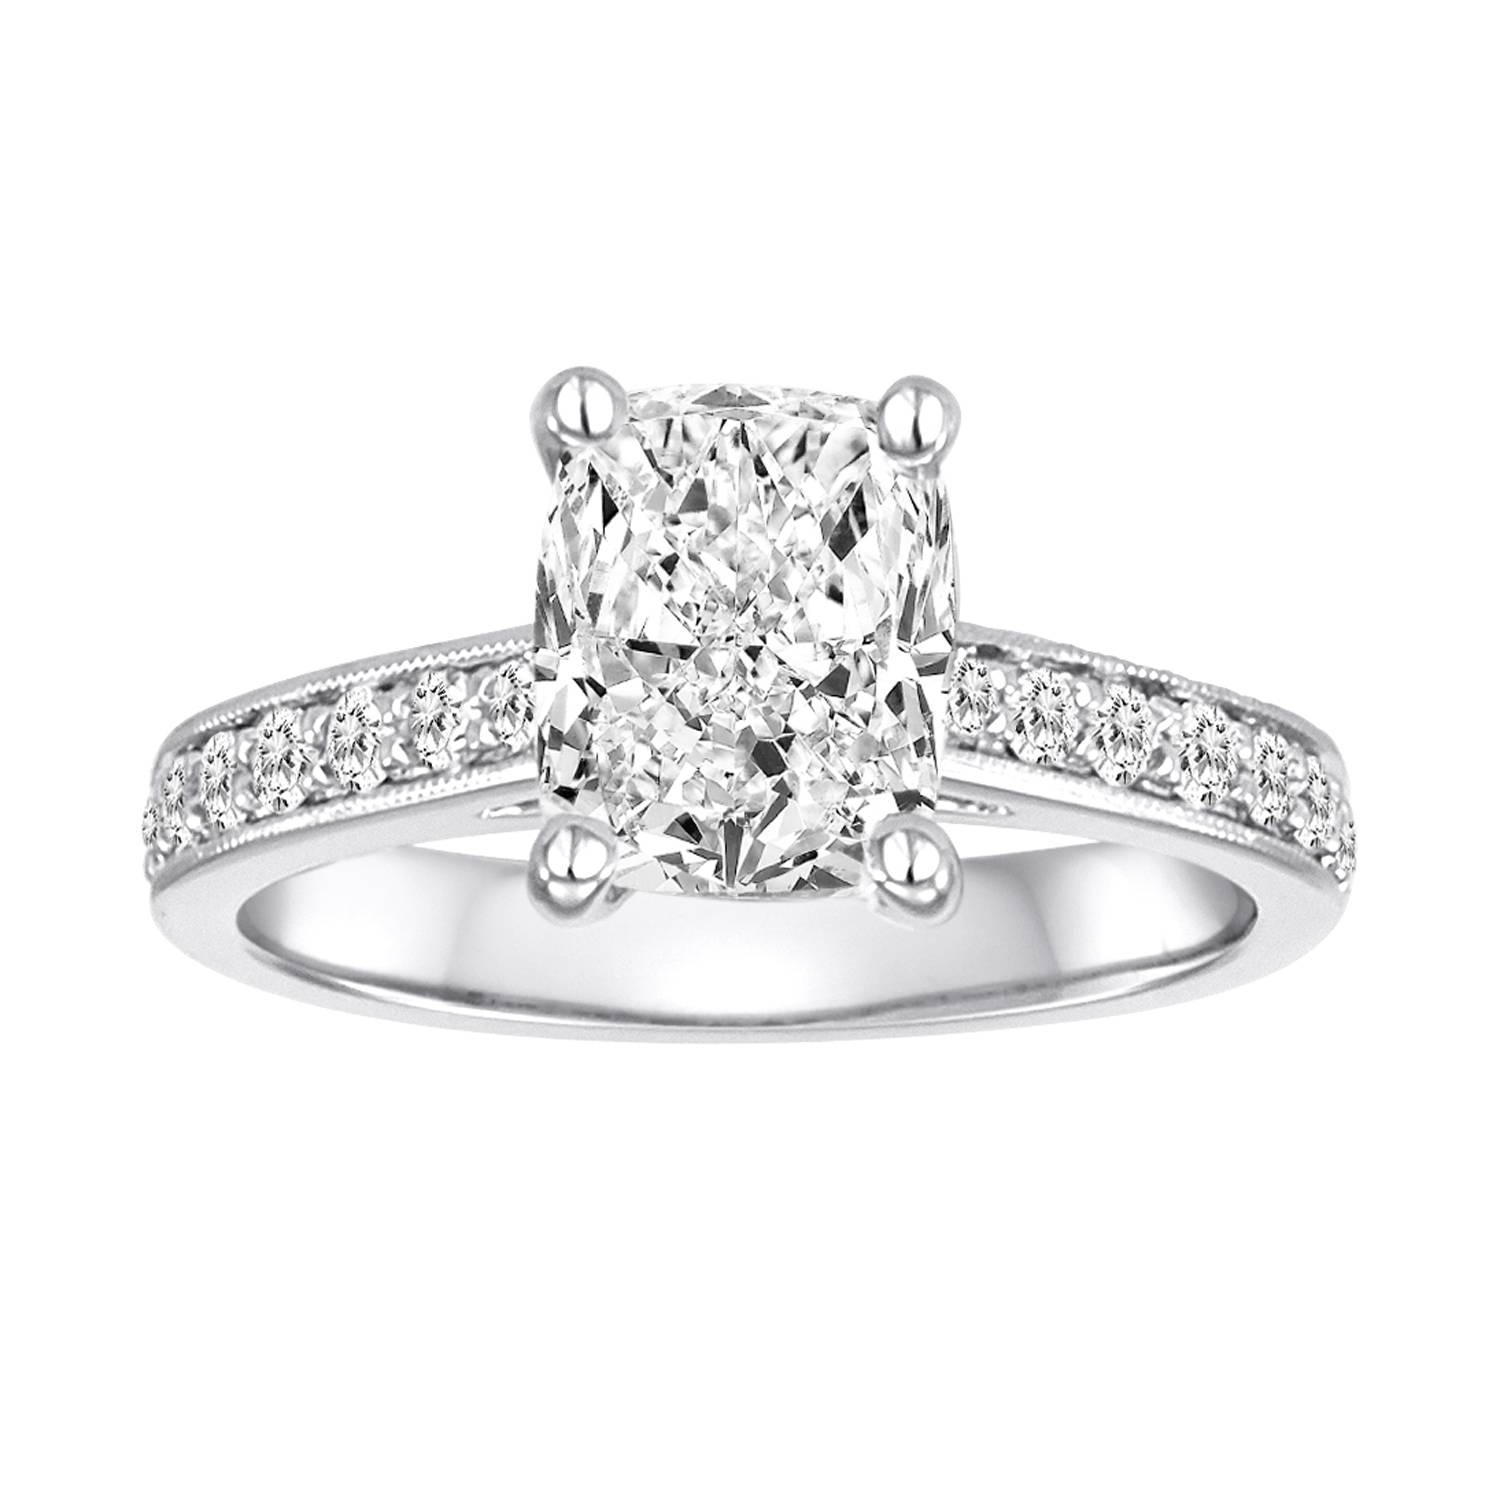 Custom Diamond Engagement Rings: Wholesale Prices Regarding Custom Diamond Engagement Rings (Gallery 9 of 15)